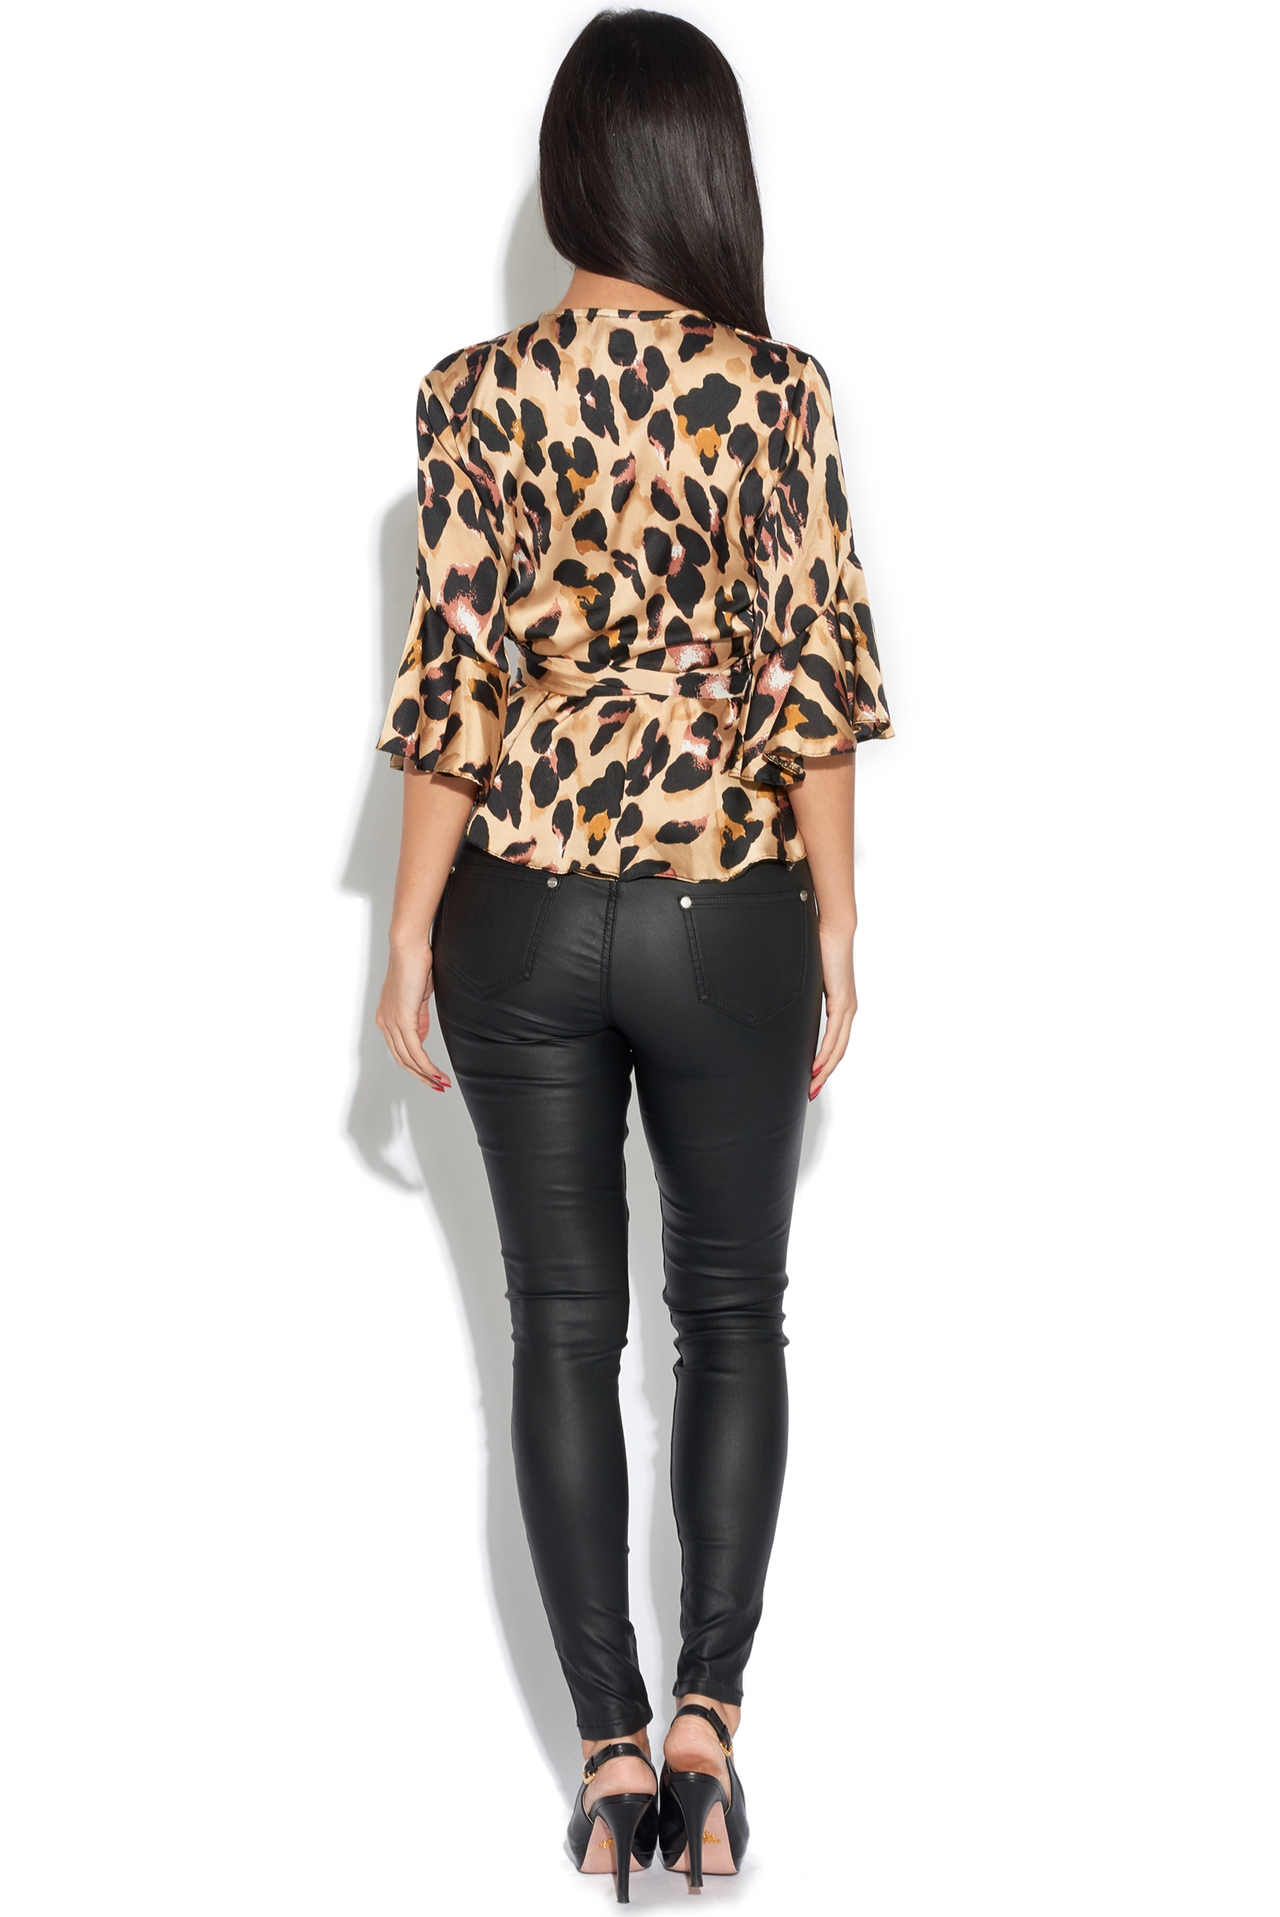 27c76ad3d56d6 Leopard Print Peplum Wrap Over Top